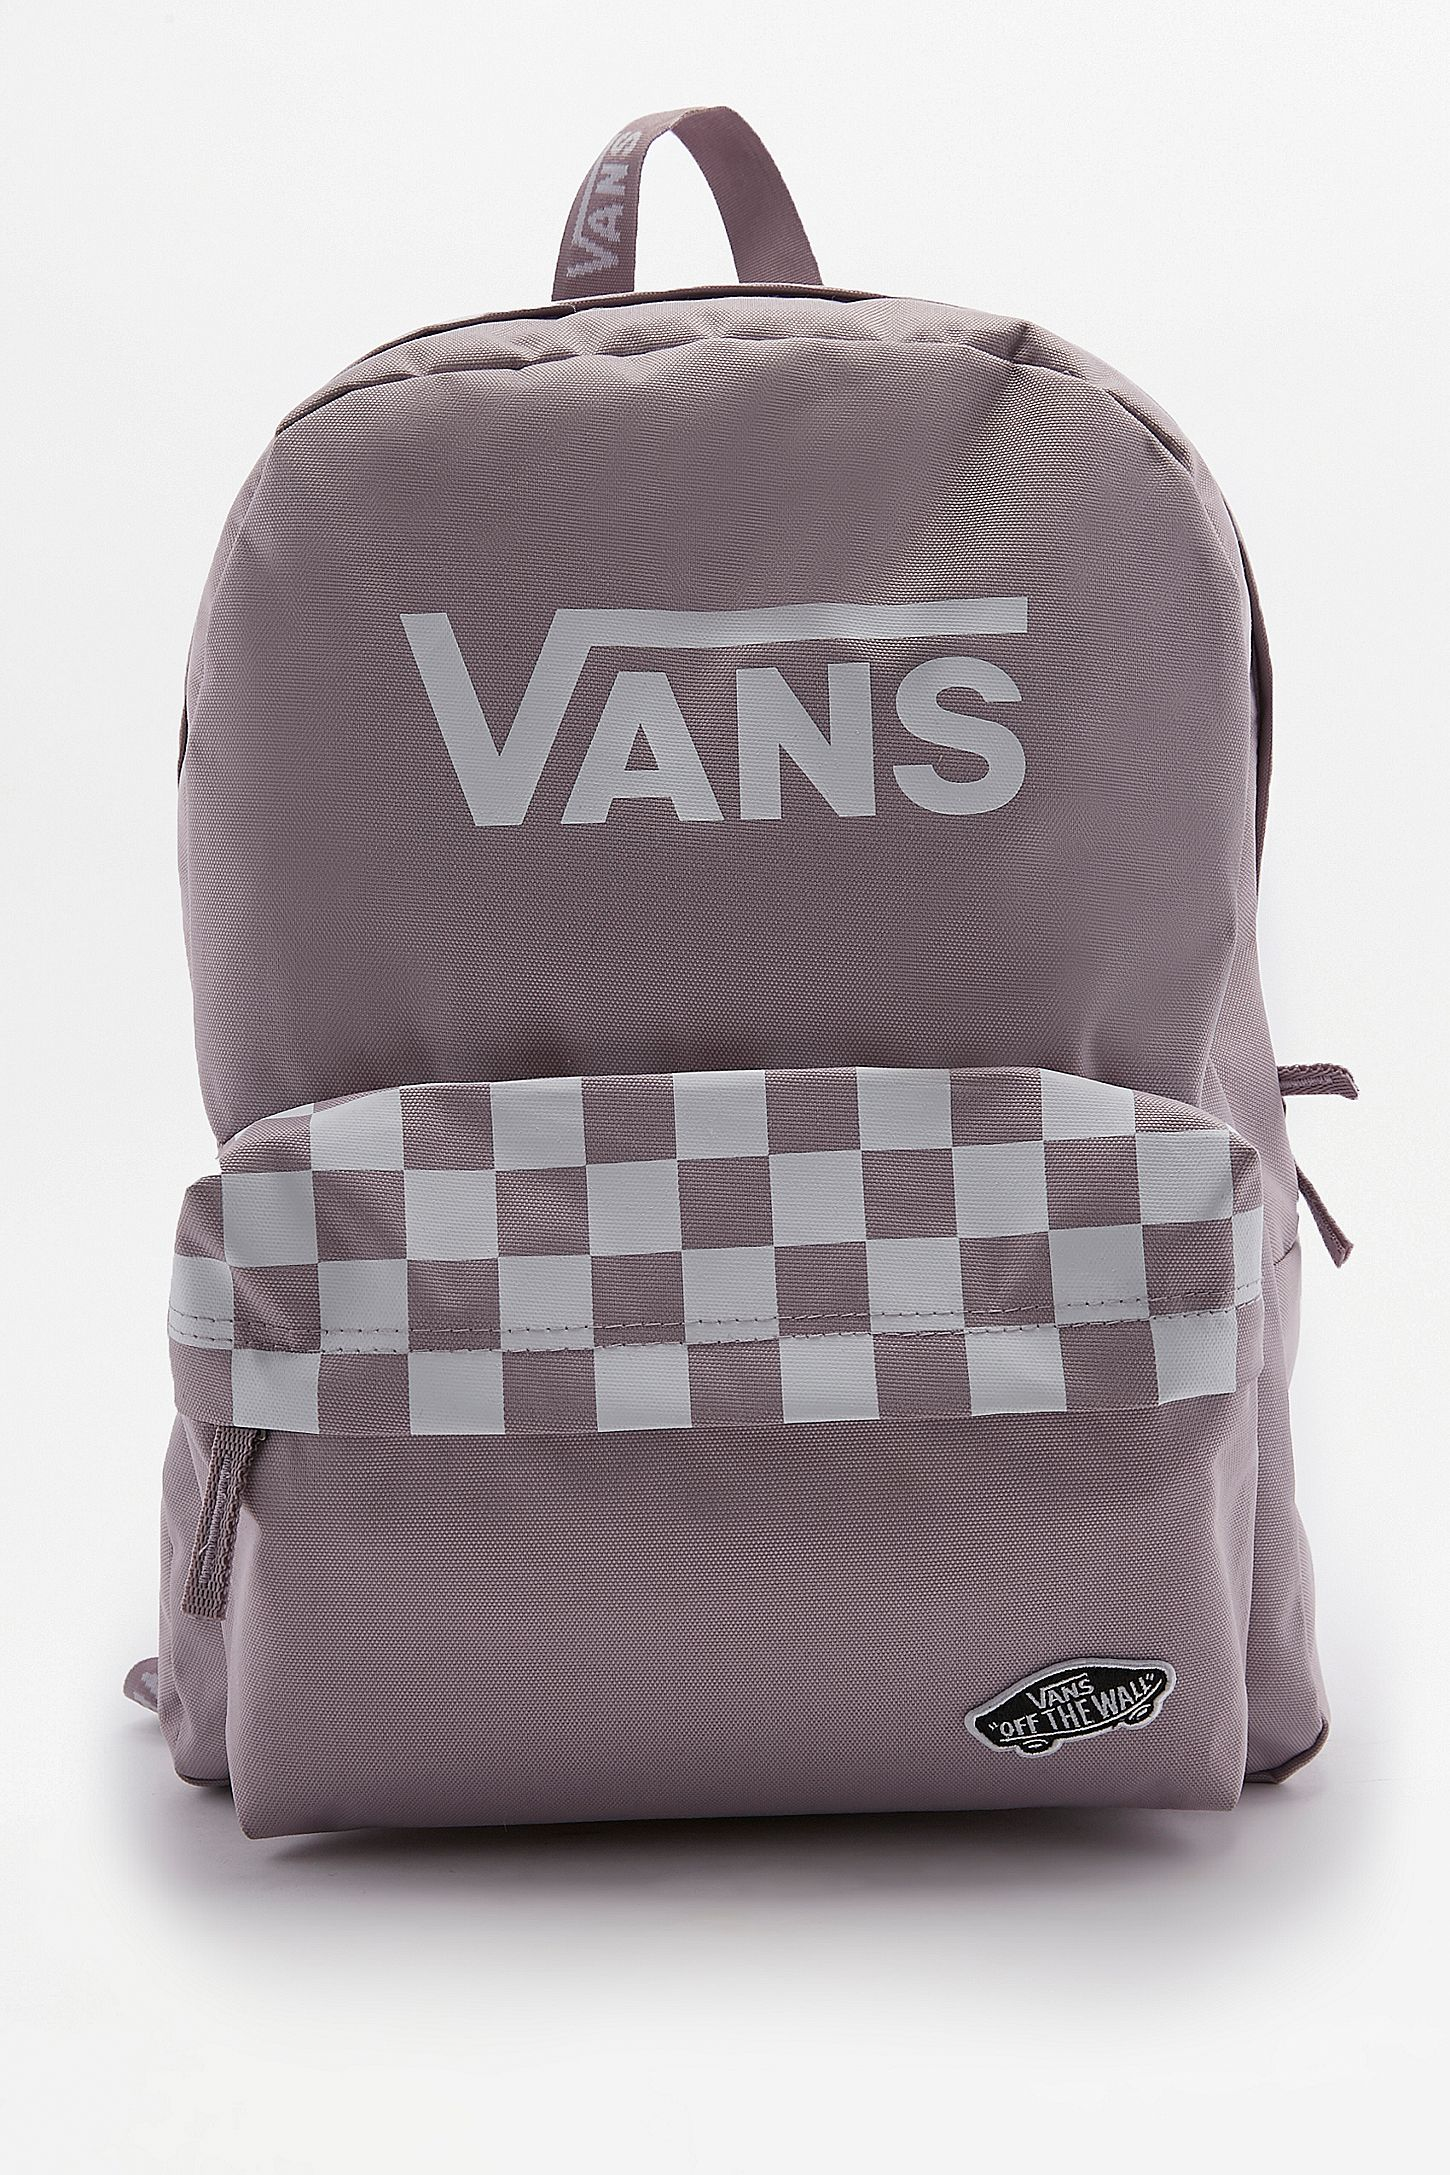 ac908666c6a Vans Sporty Realm Lilac Backpack